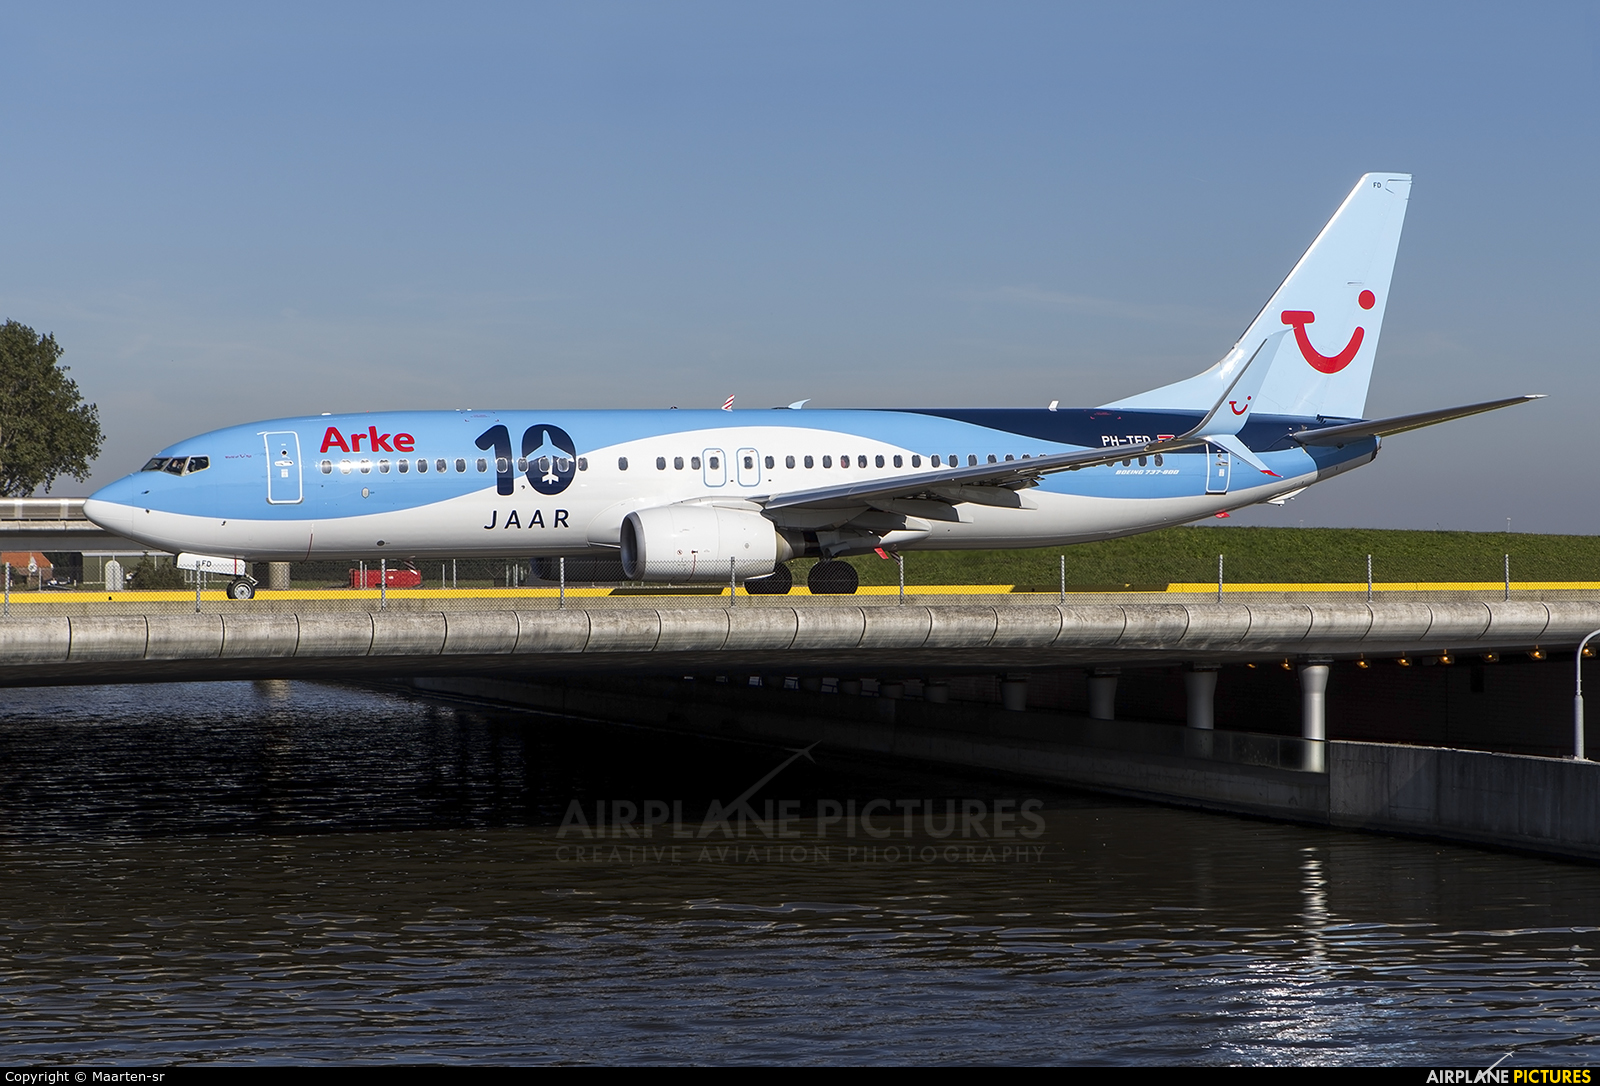 Arke/Arkefly PH-TFD aircraft at Amsterdam - Schiphol